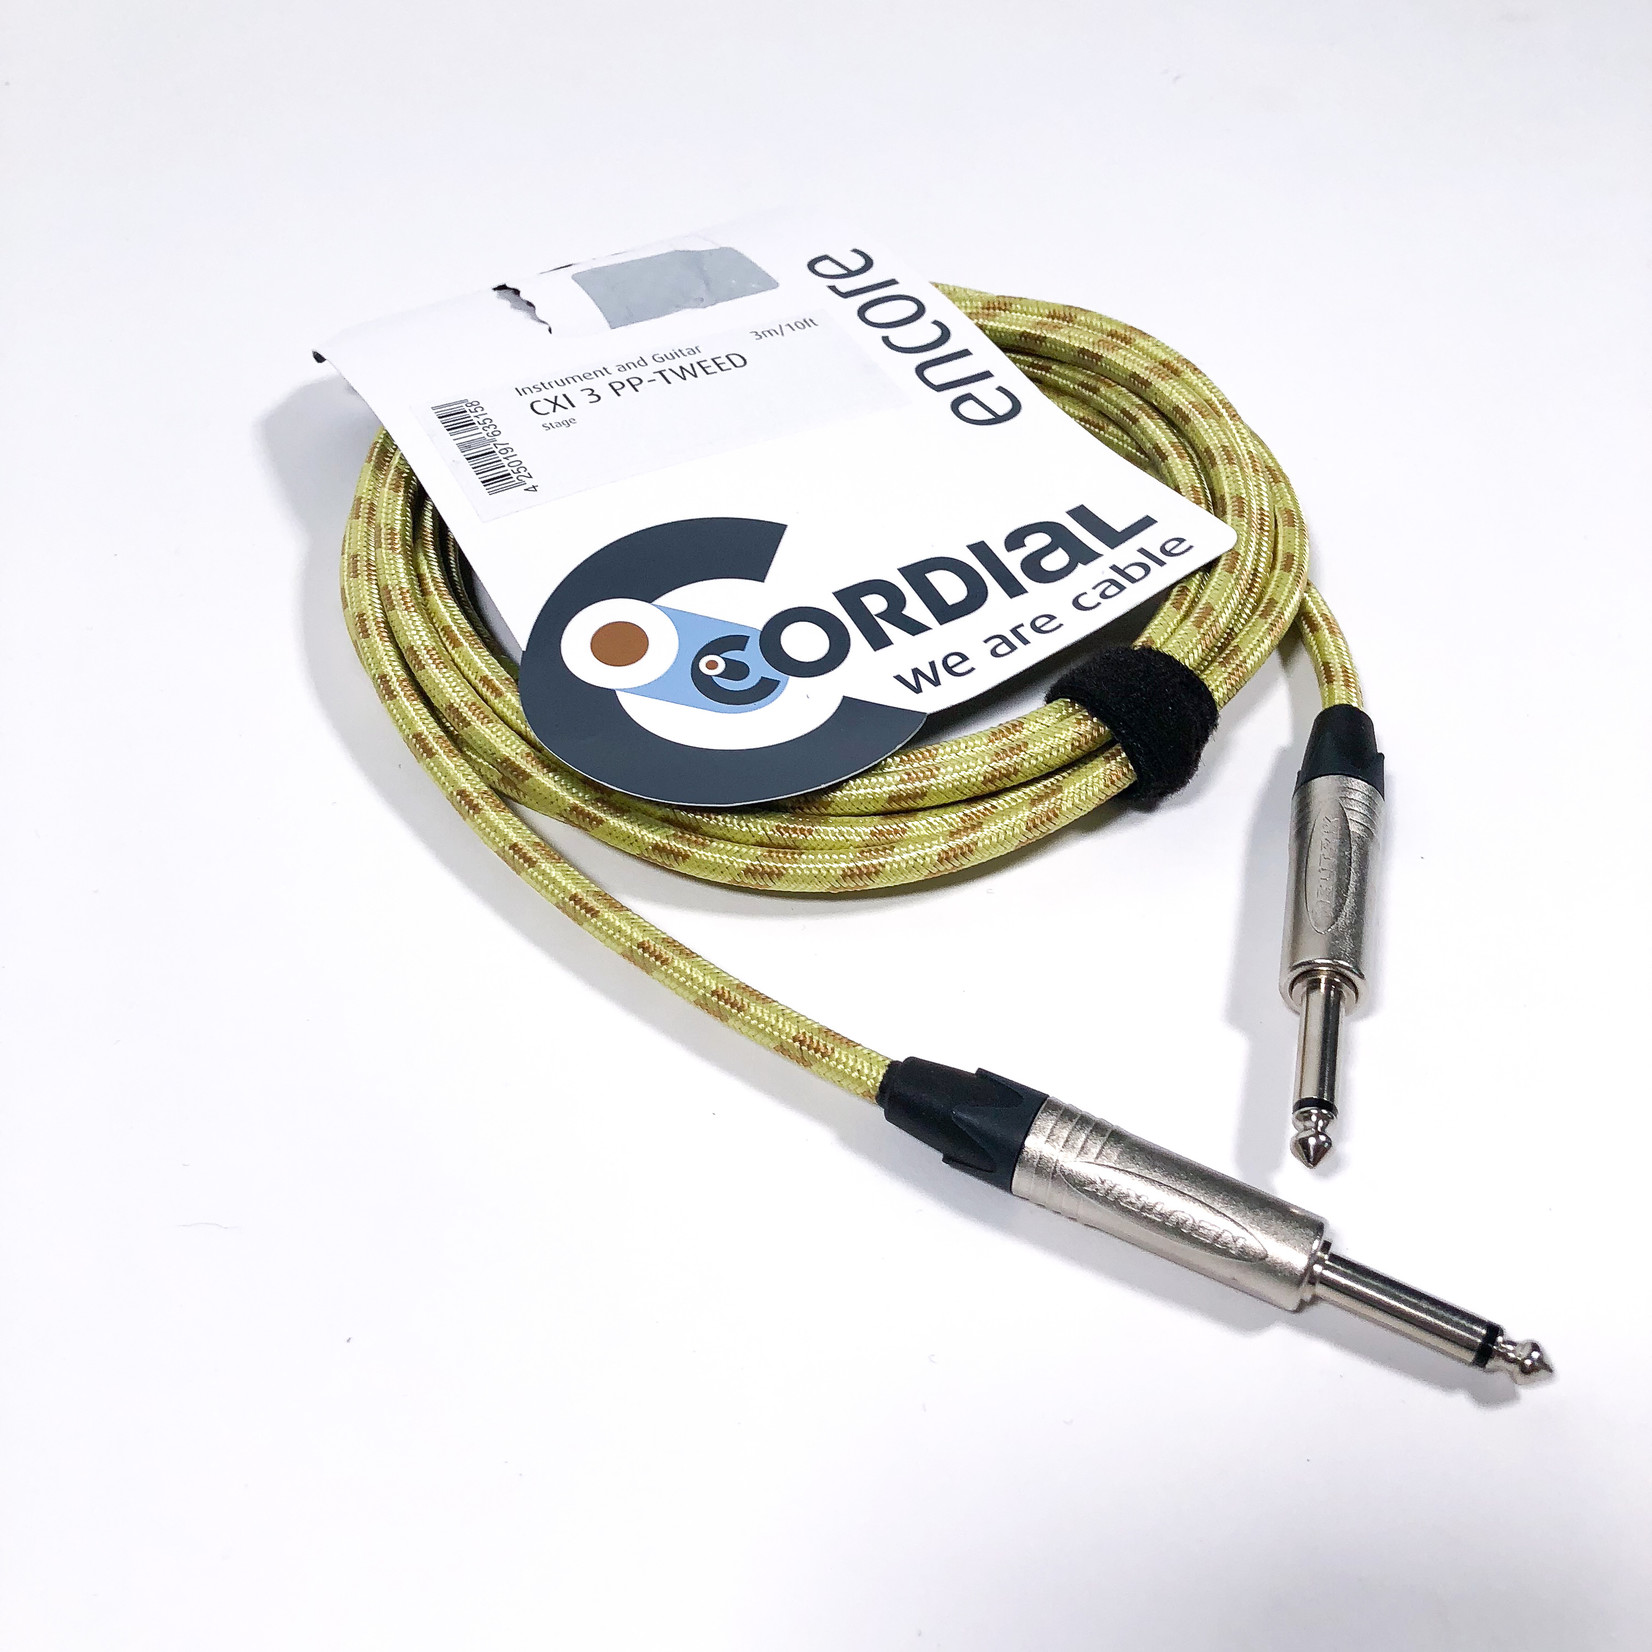 Cordial Cables Cordial 3m /~10ft Instrument Cable for Stage, 1/4'' Neutrik NP2X Connectors, CXI 3 PP-TWEED (Germany)